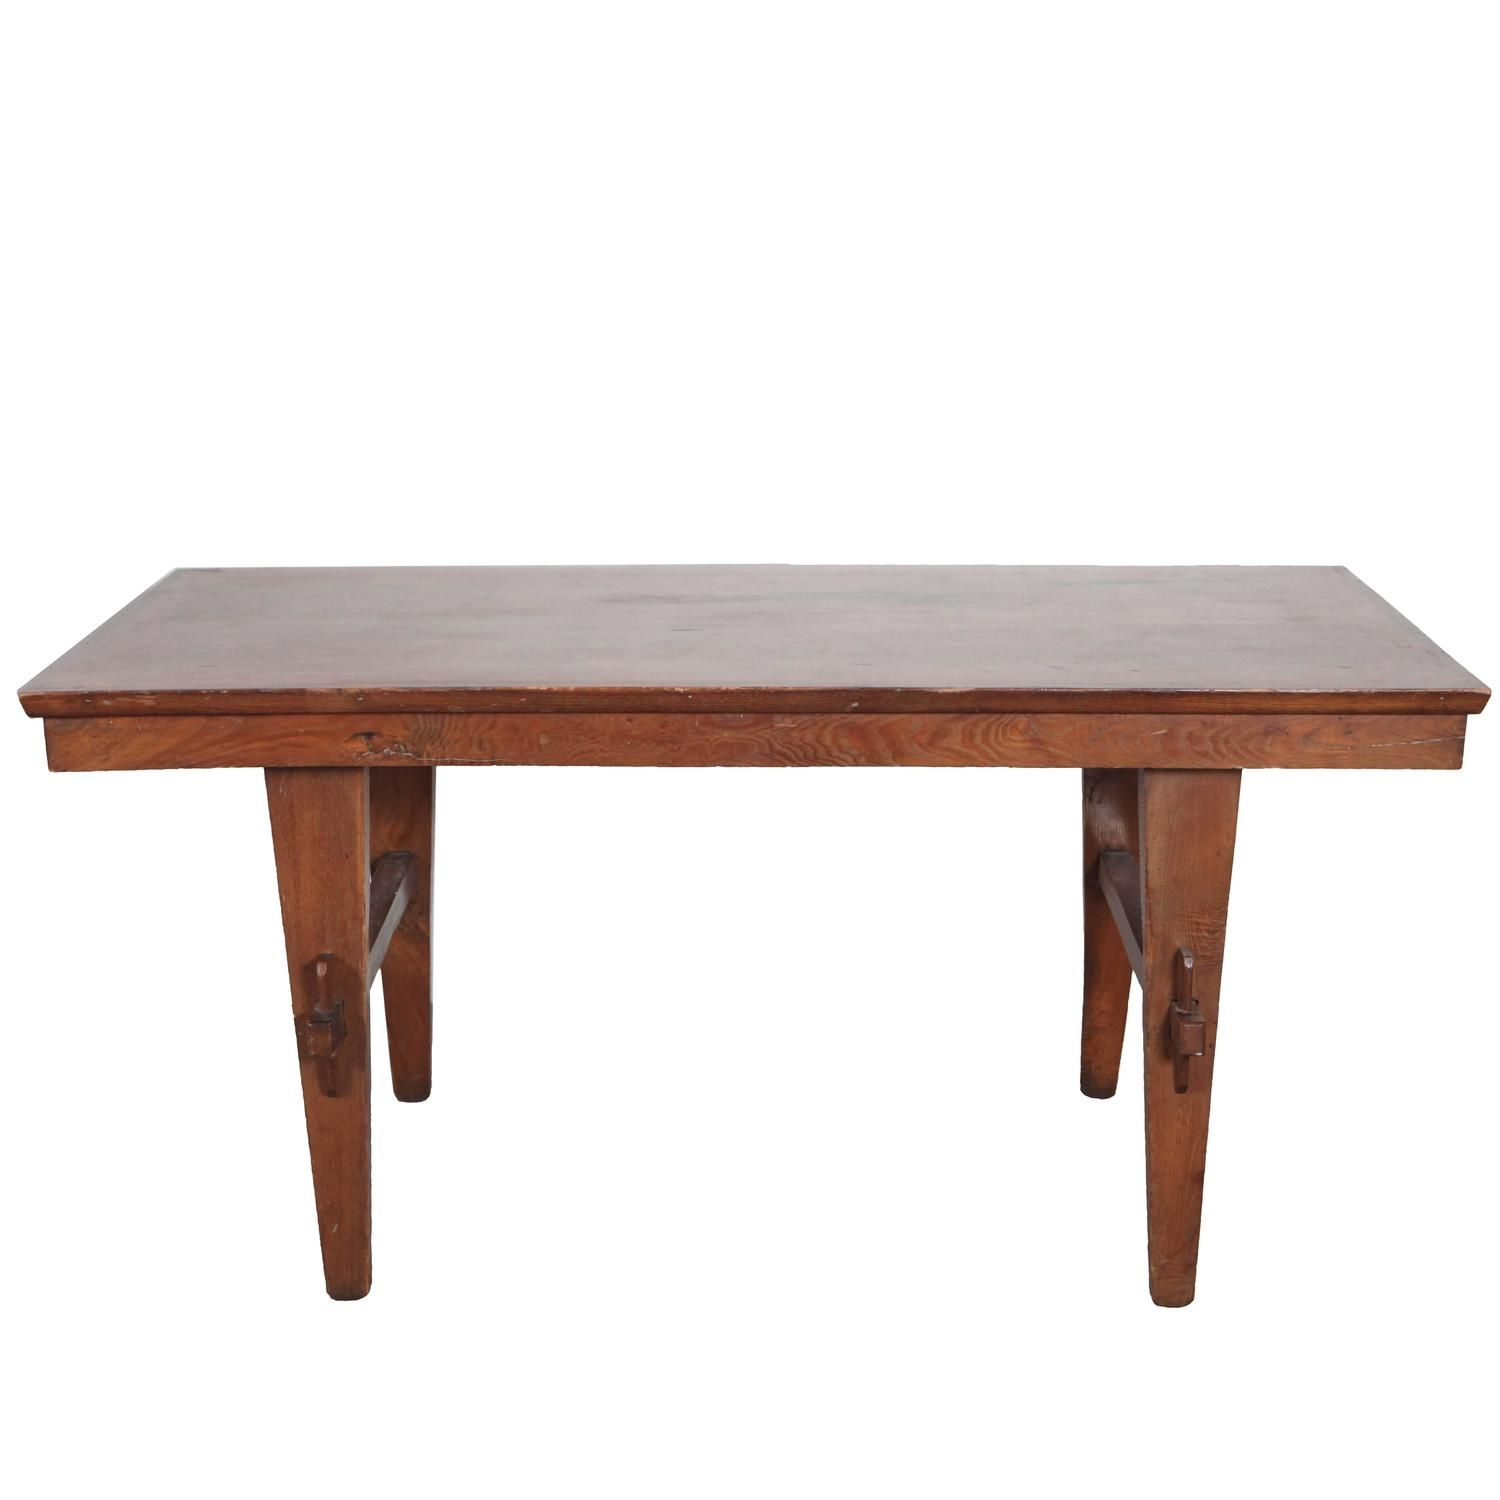 Italian Dining Table with Peg Hold Legs   From a unique collection of antique and modern dining room tables at https://www.1stdibs.com/furniture/tables/dining-room-tables/